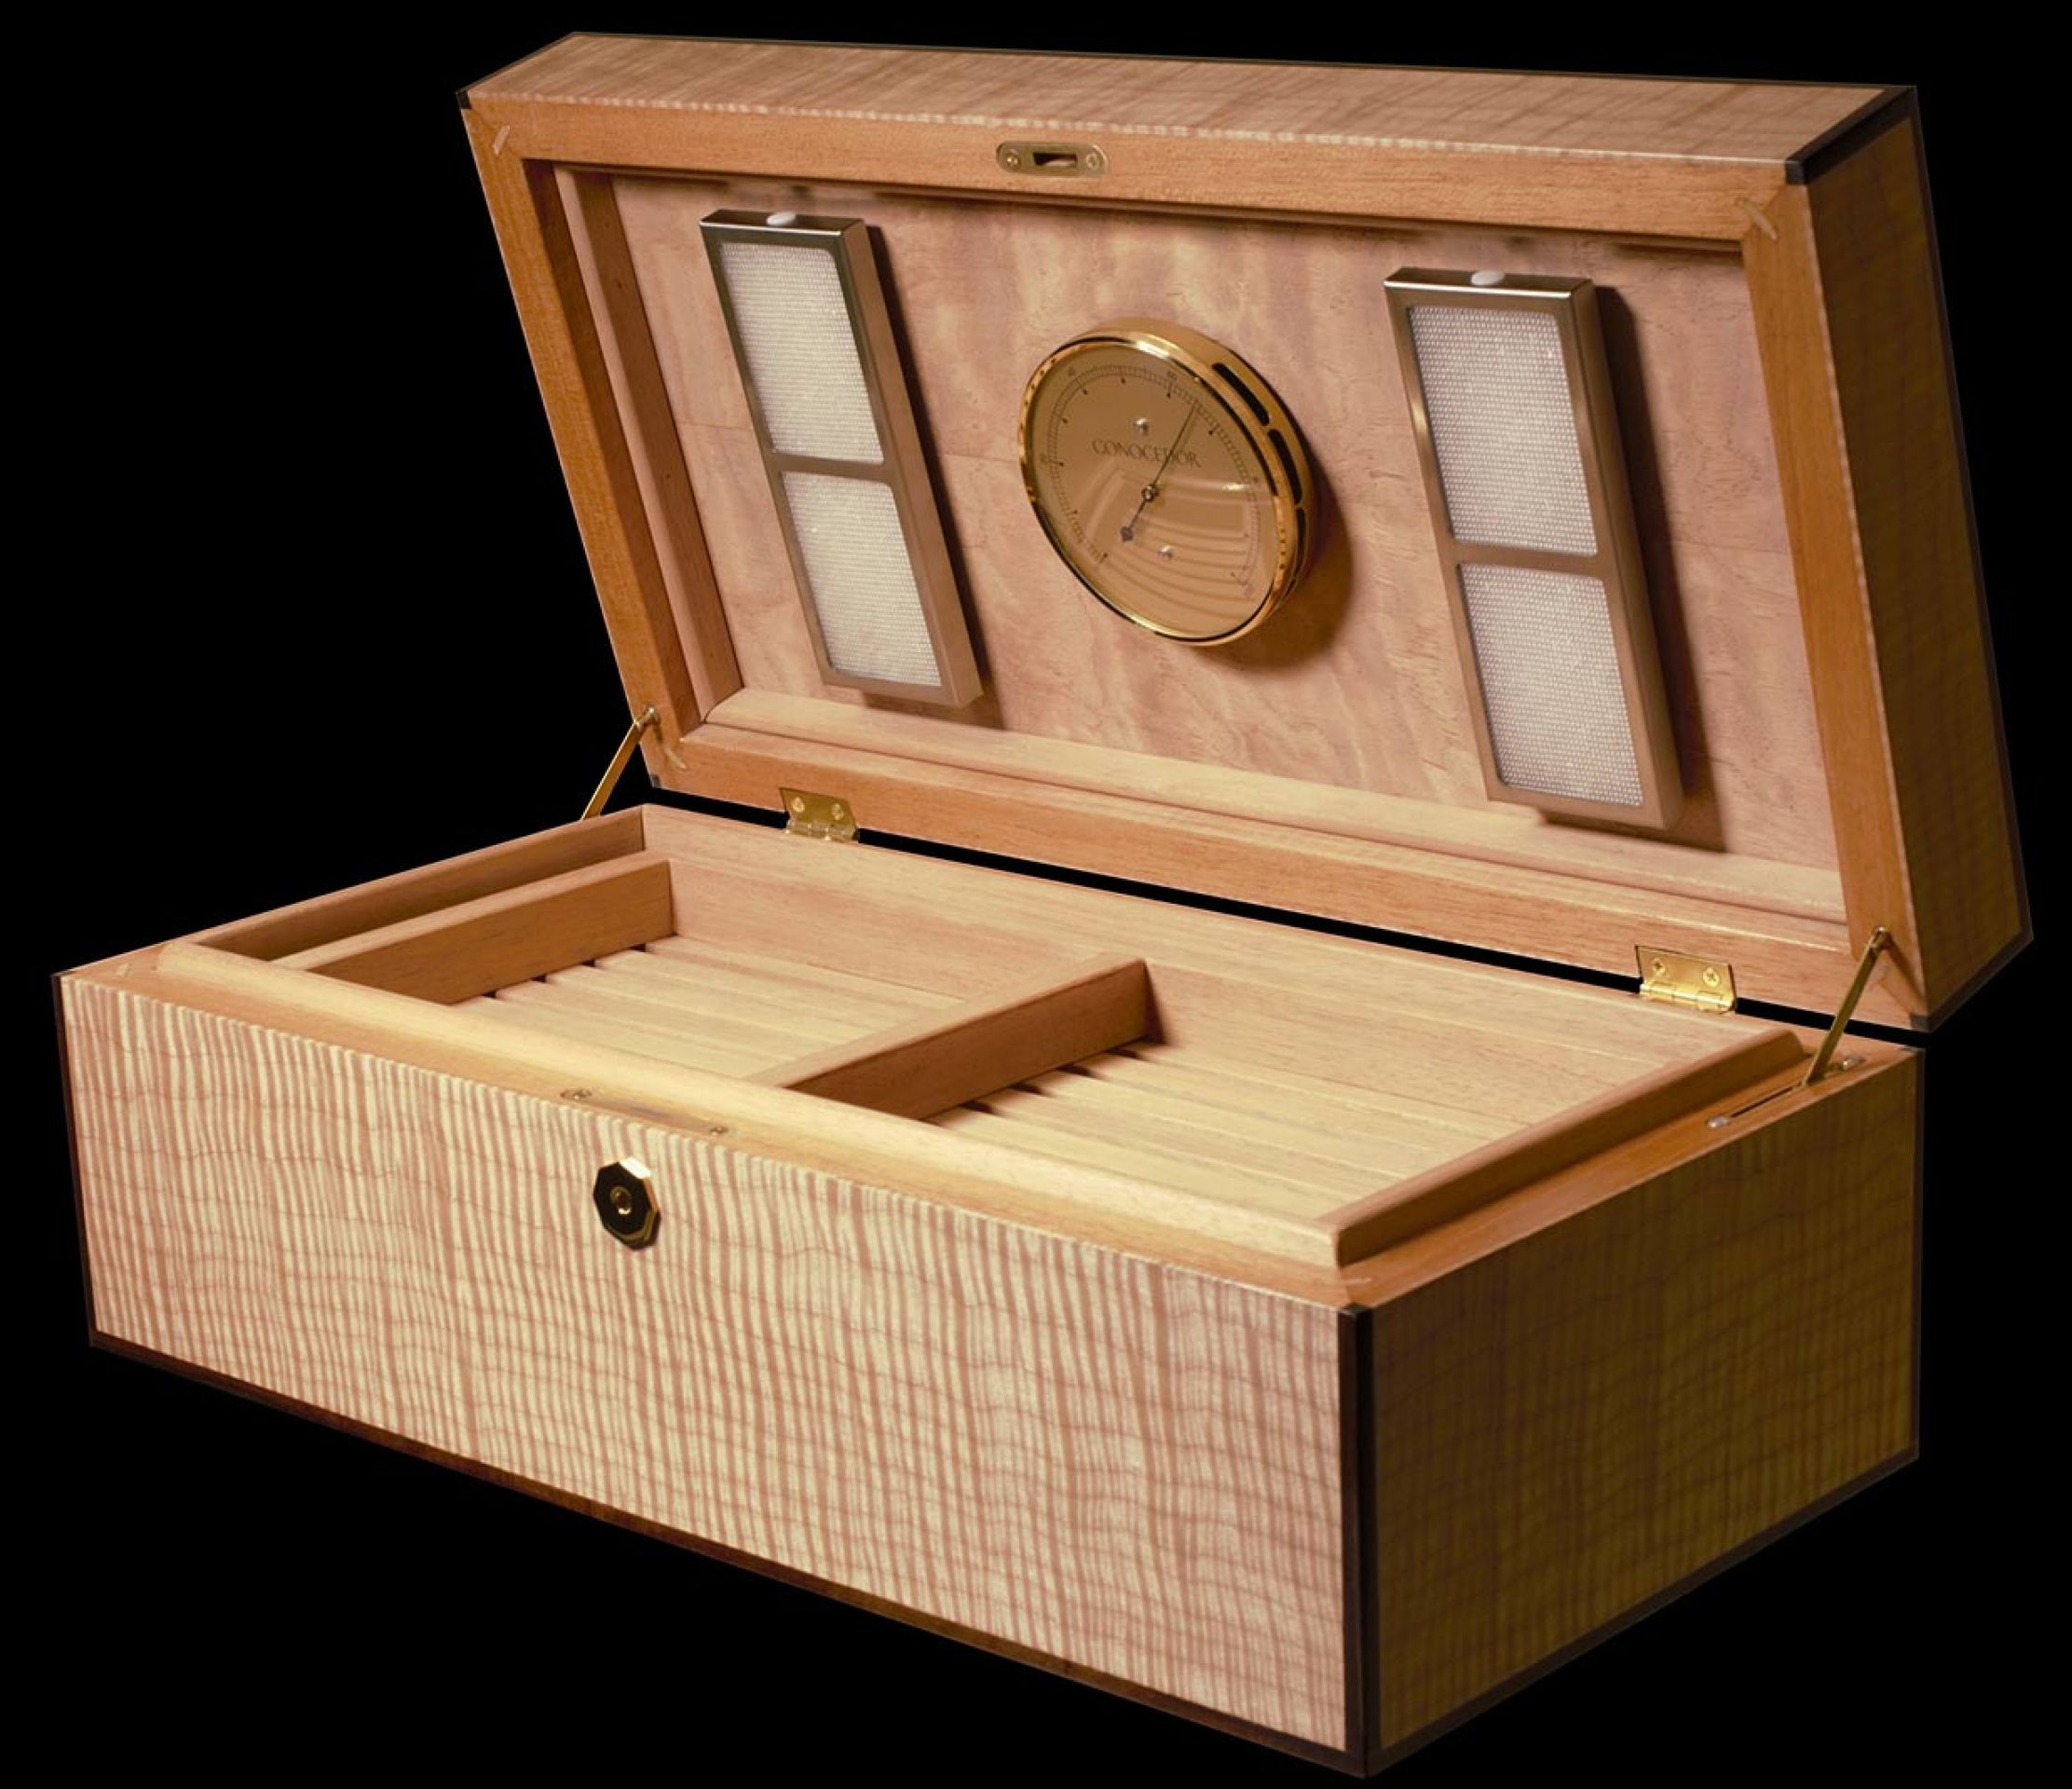 Luxury Desktop Cigar Humidor by Conocedor Finland